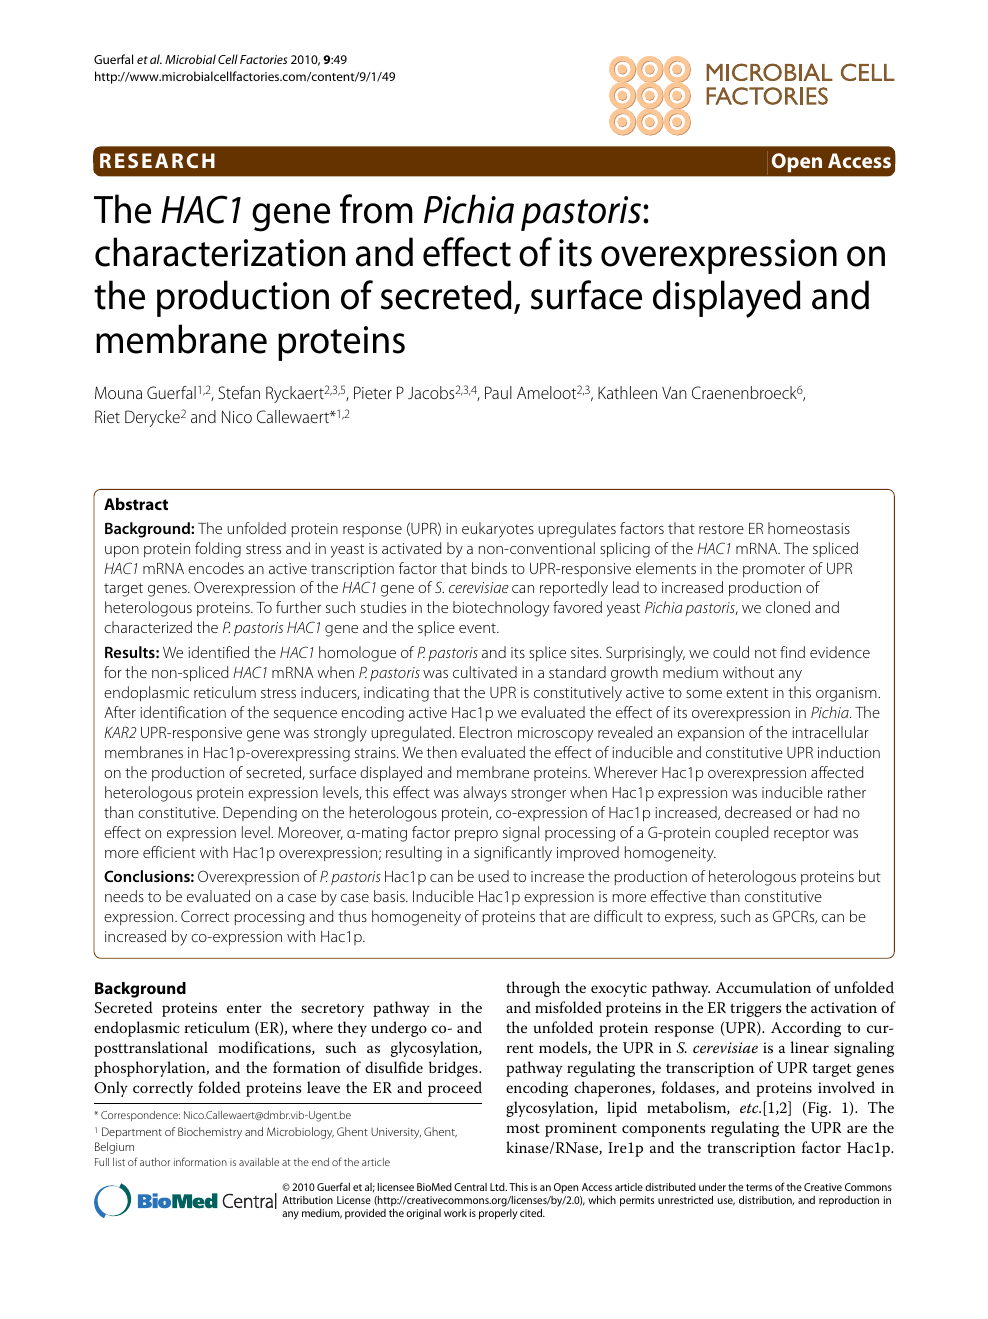 The HAC1 gene from Pichia pastoris: characterization and effect of